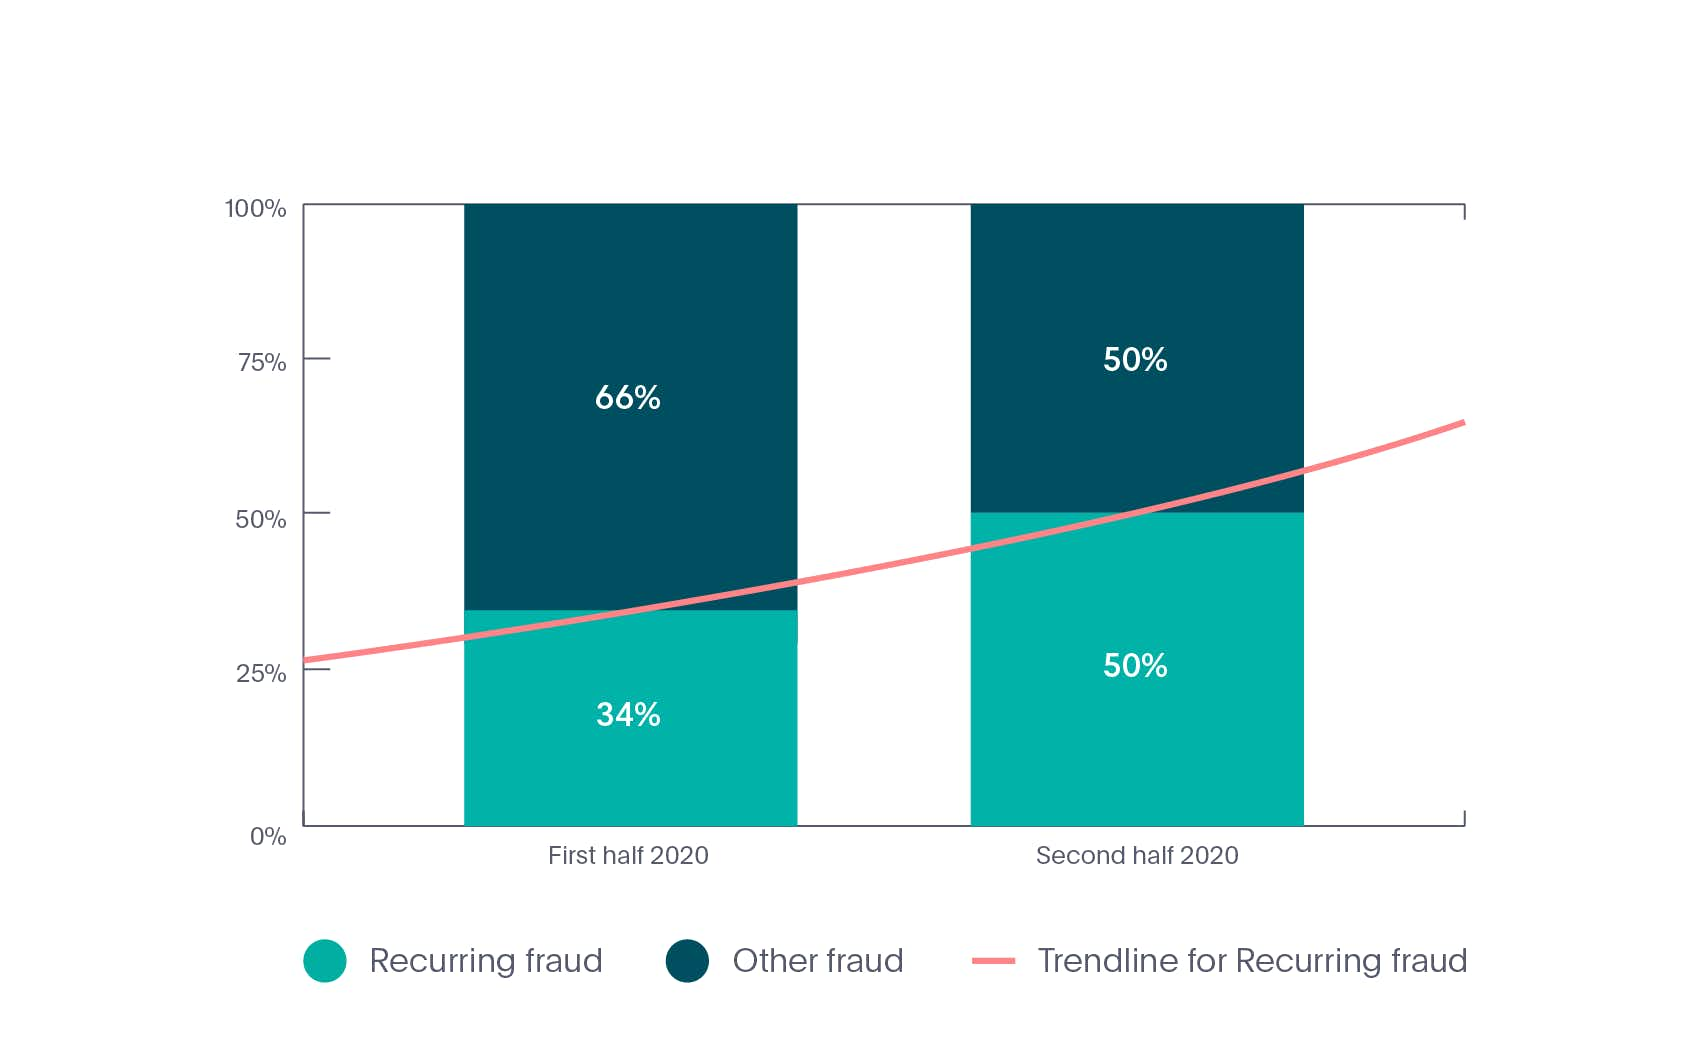 Online recurring identity fraud rate in Mobility industry in 2020